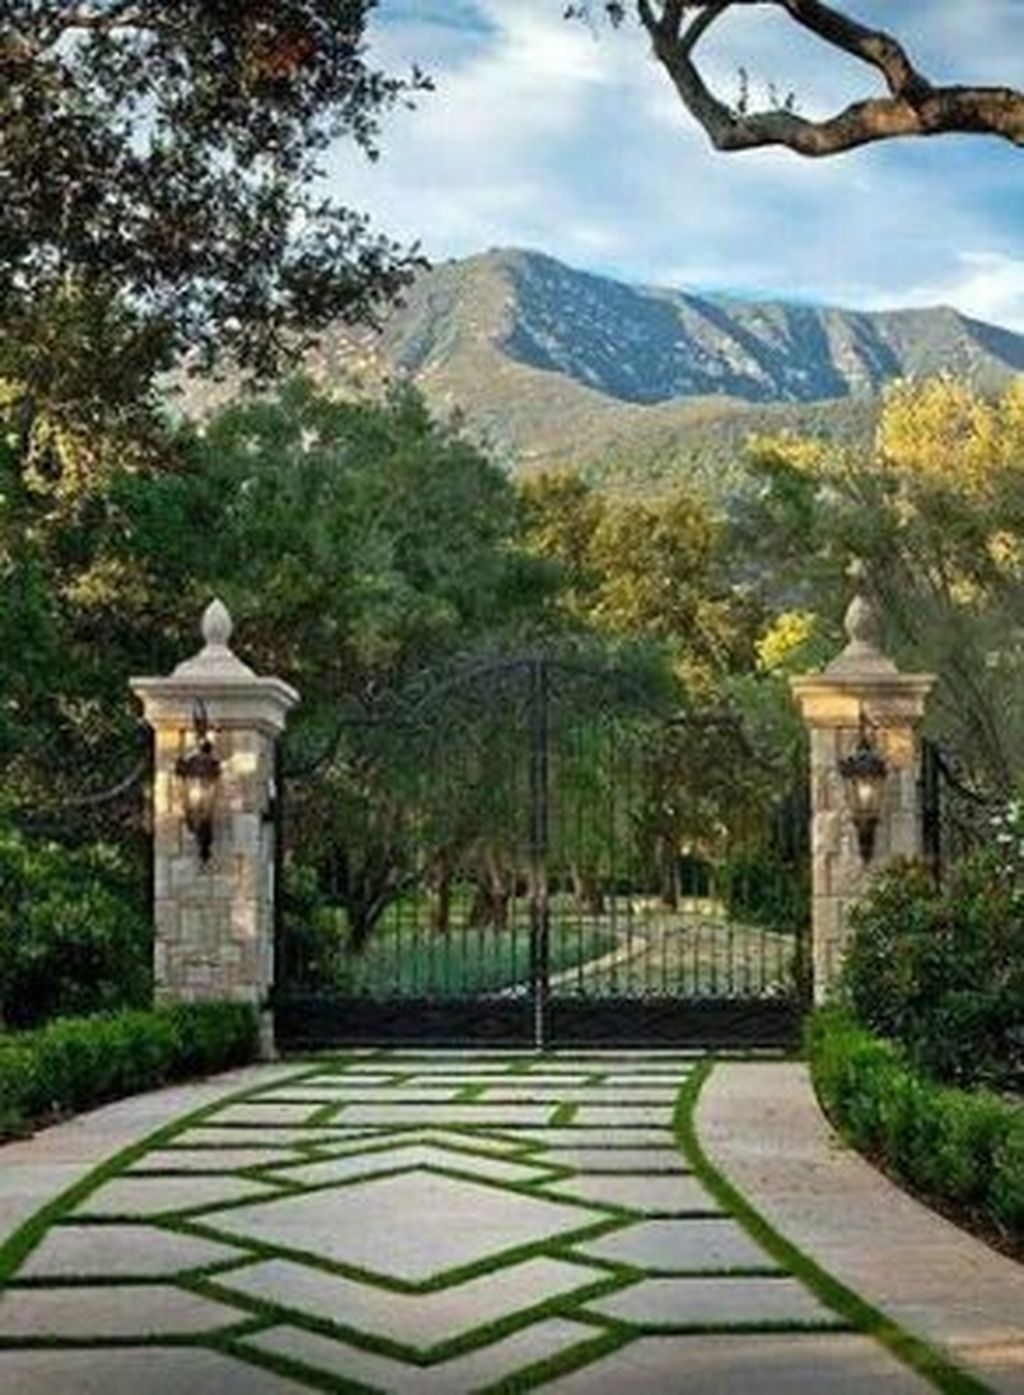 Fabulous Driveway Landscaping Design Ideas For Your Home To Try Asap 28